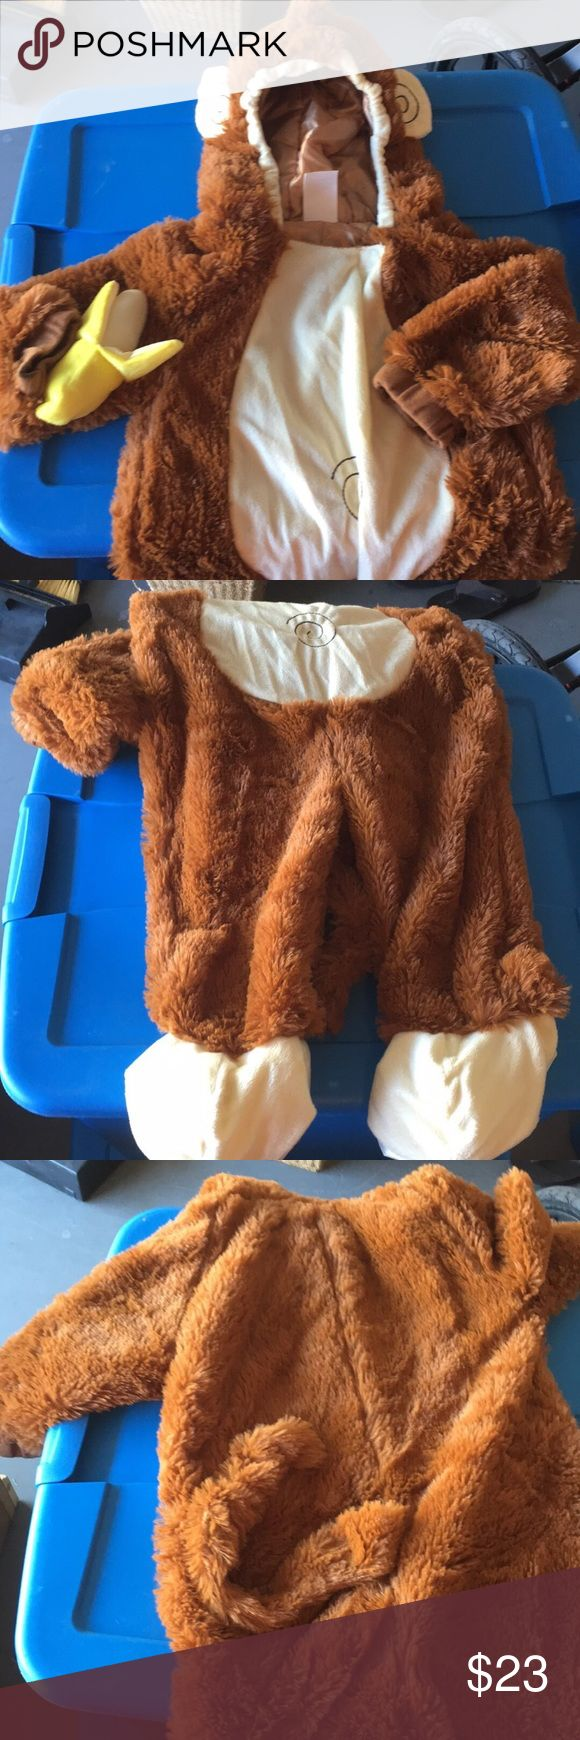 17 Best Ideas About Baby Monkey Costume On Pinterest Mother